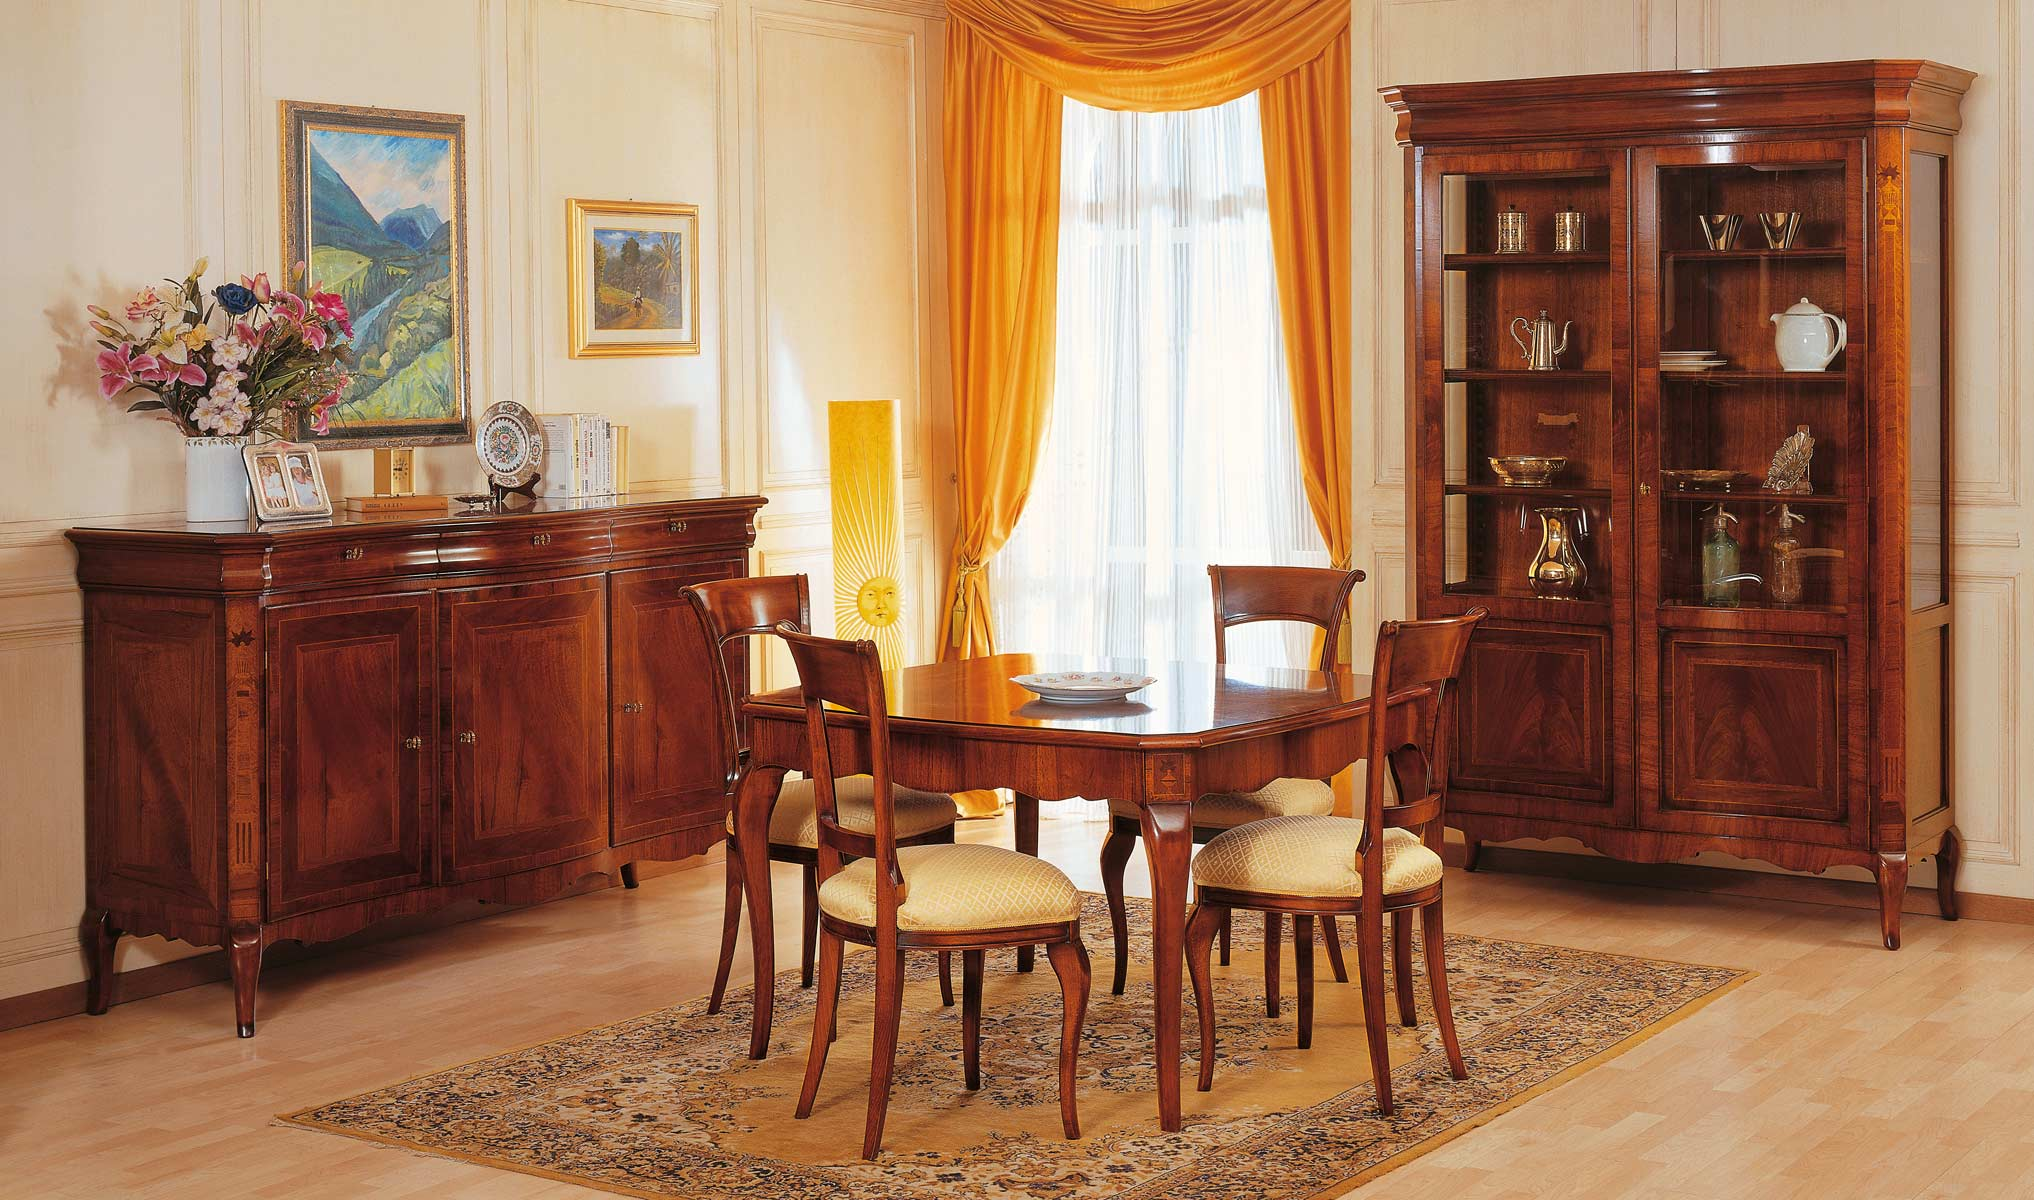 Dining room in 19th century french style vimercati for A dining room in french